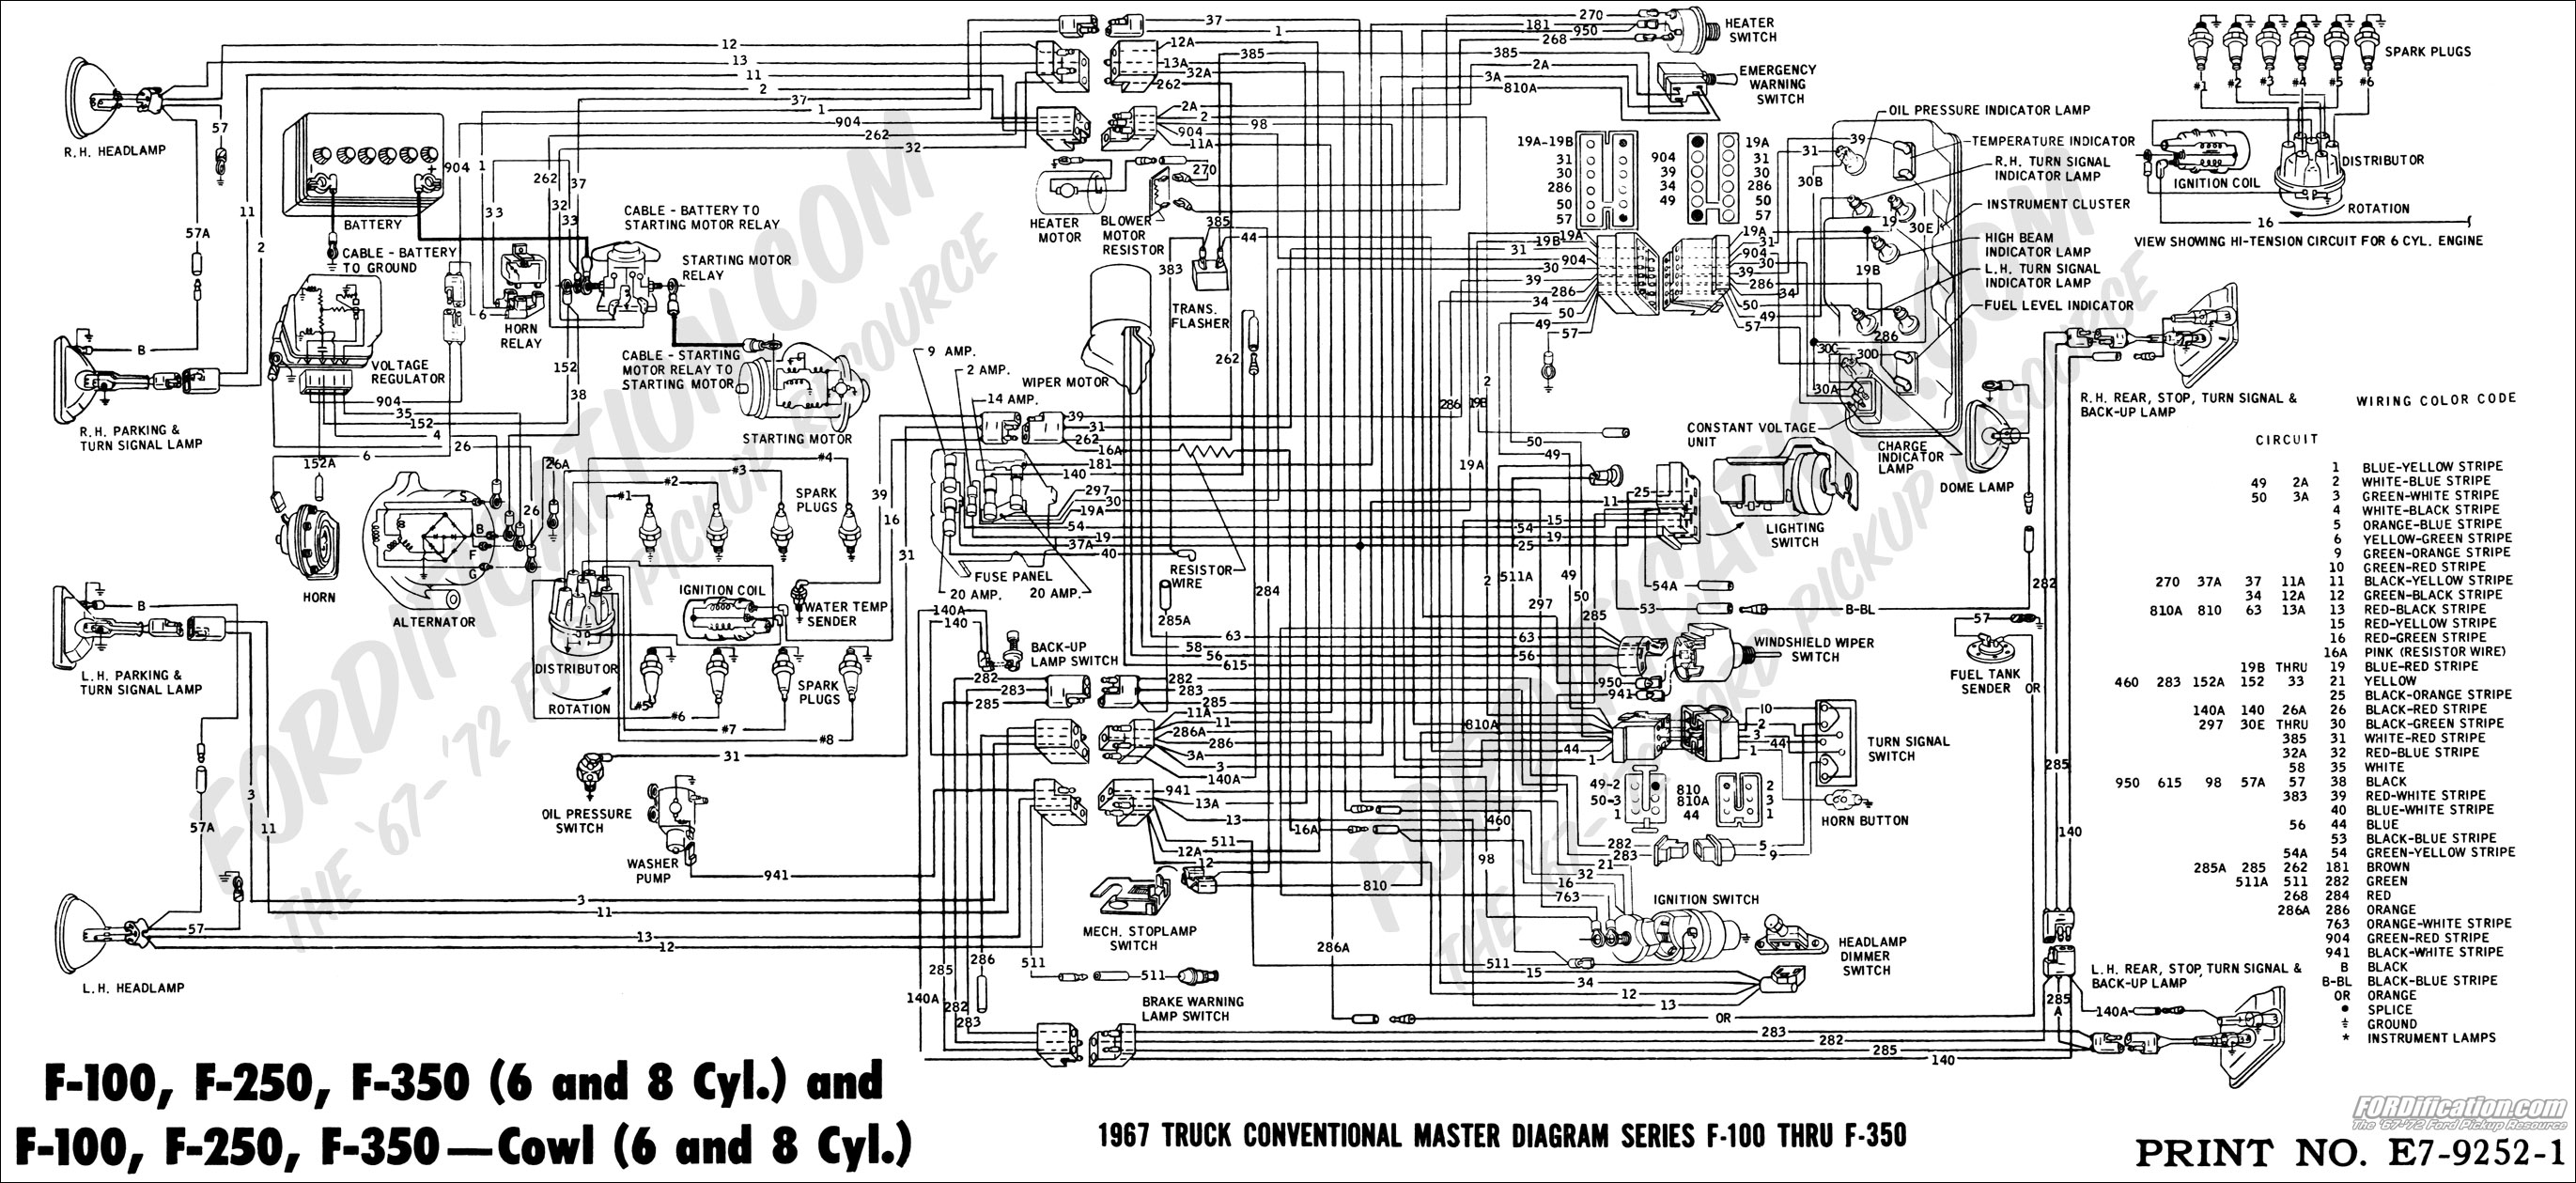 67masterdiagram ford f150 wiring diagram pdf 84 ford f 150 wiring diagram \u2022 wiring 2006 ford f150 wire harness at reclaimingppi.co